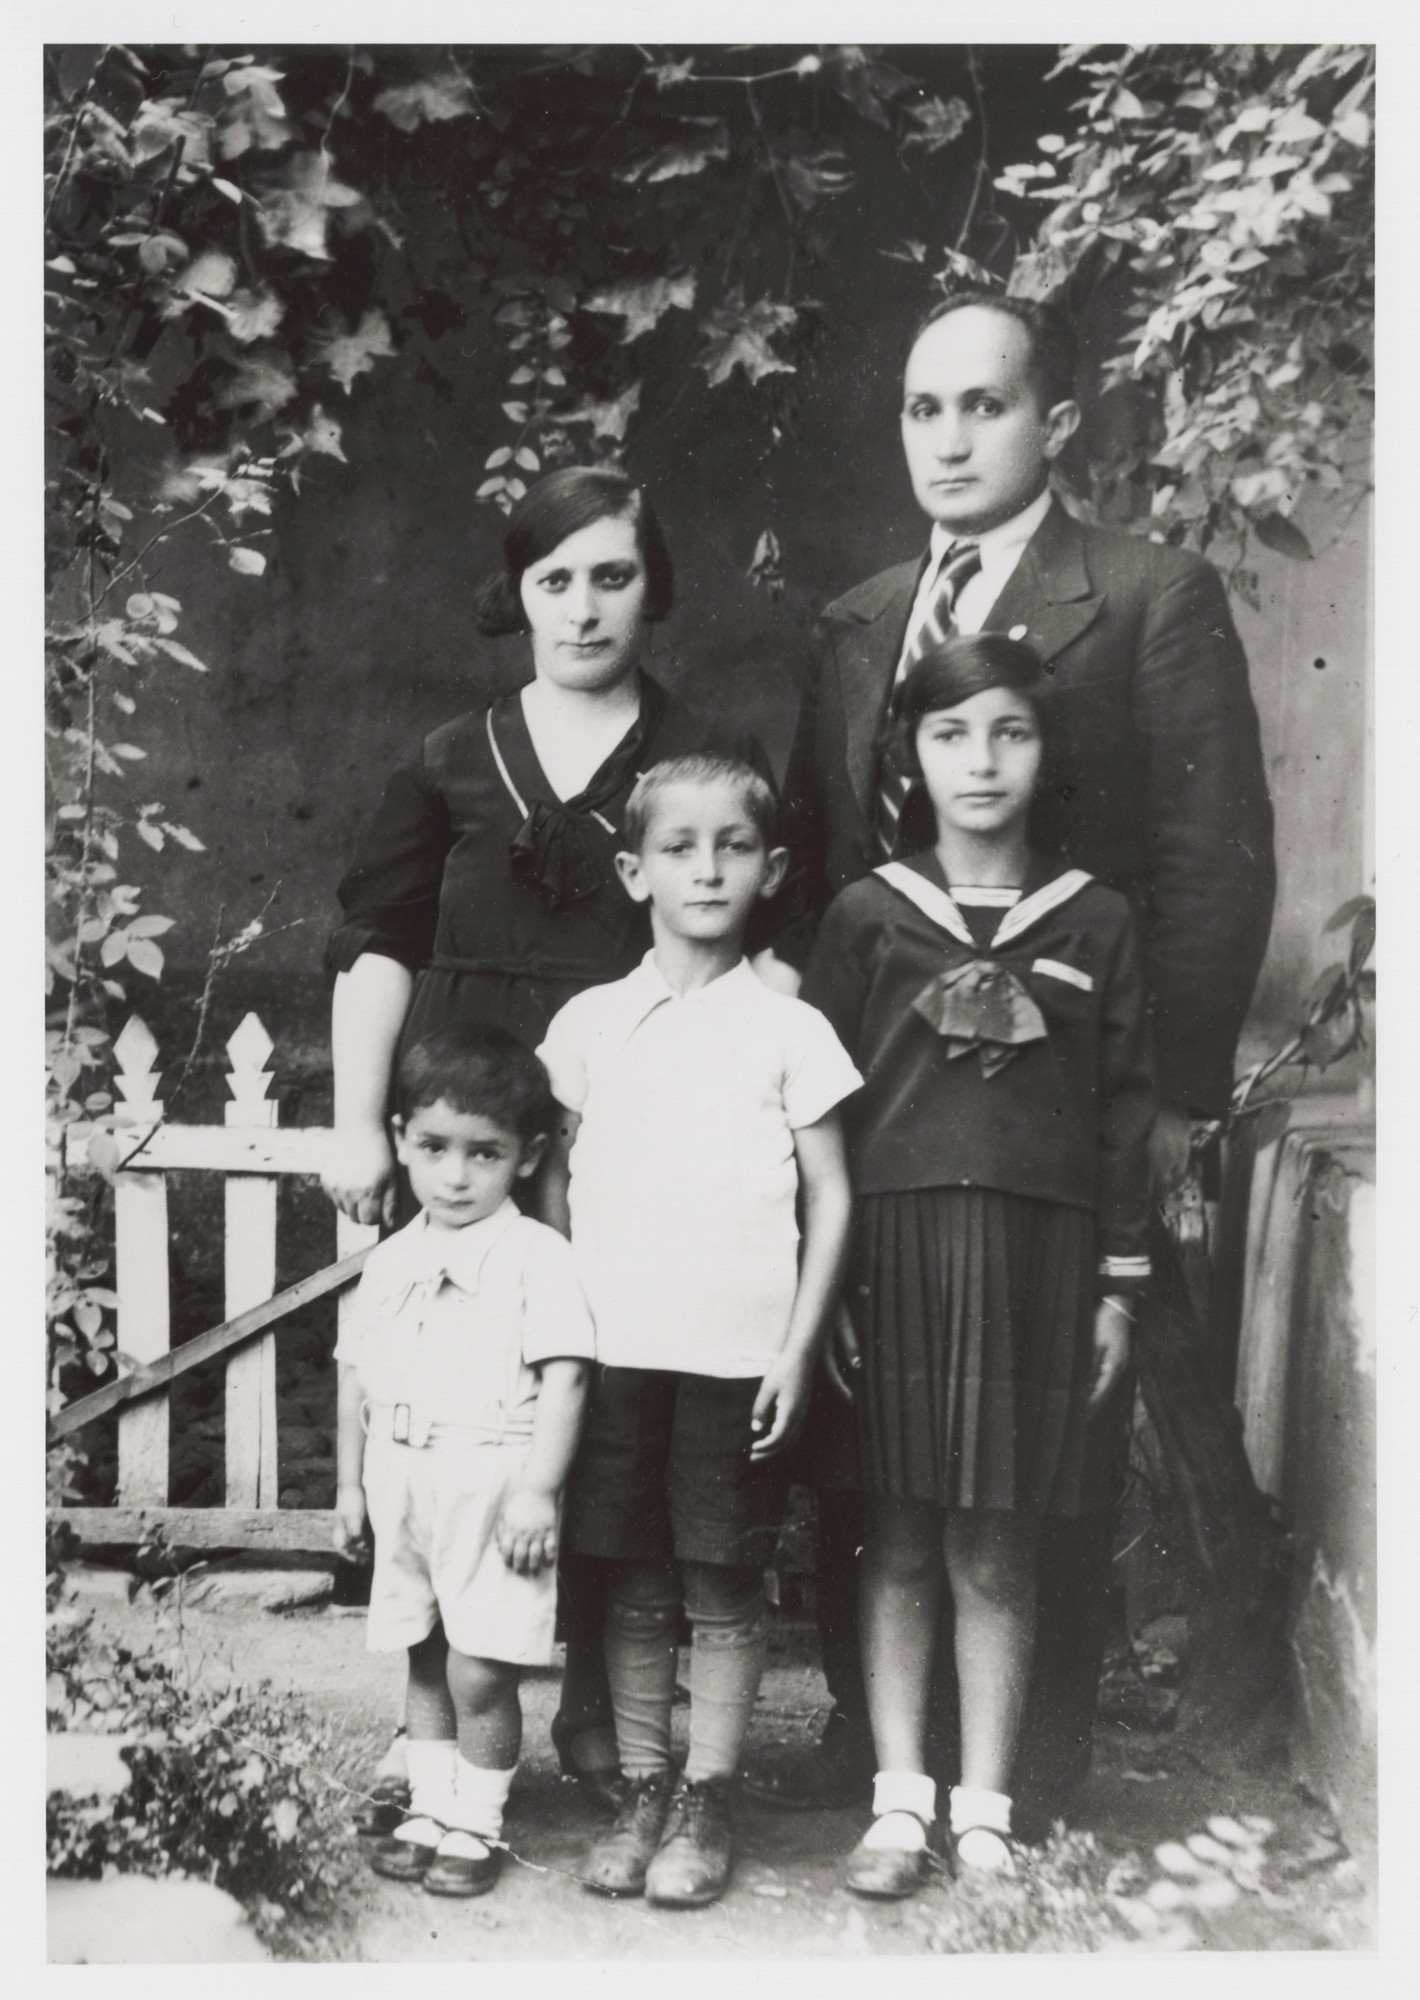 Portrait of the Nahmias family.  Pictured are parents Elvira and Isaac, with children Albert, Victor, and Stella.